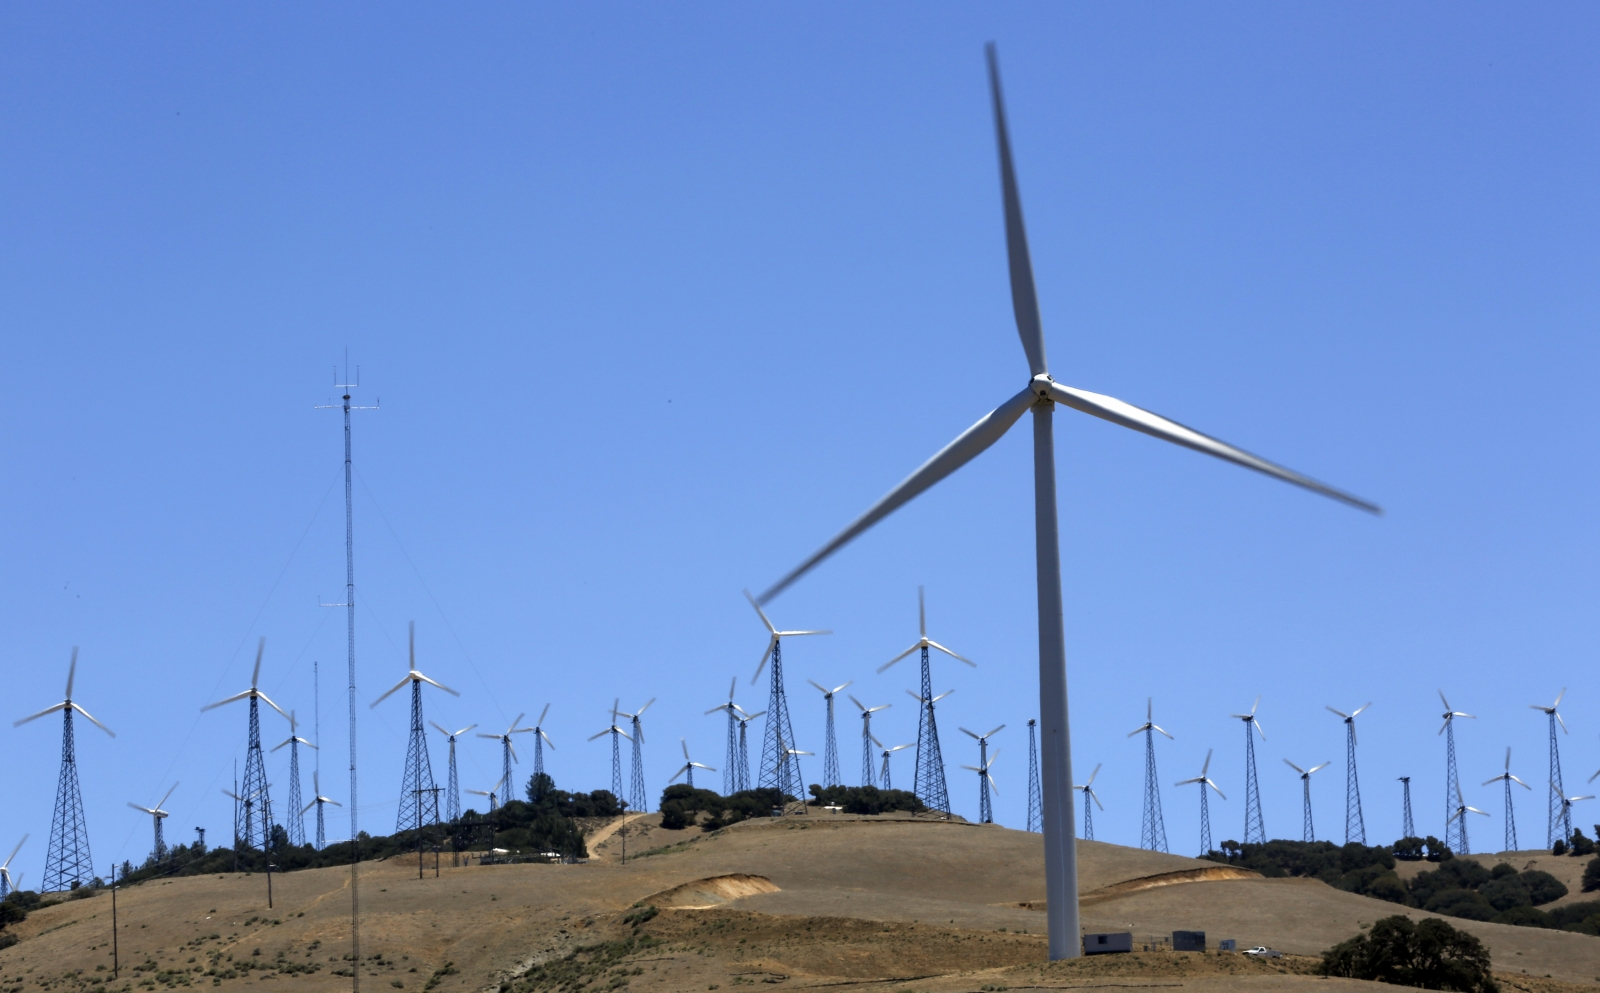 GE to acquire LM Wind Power for $1.65bn from London-based PE firm